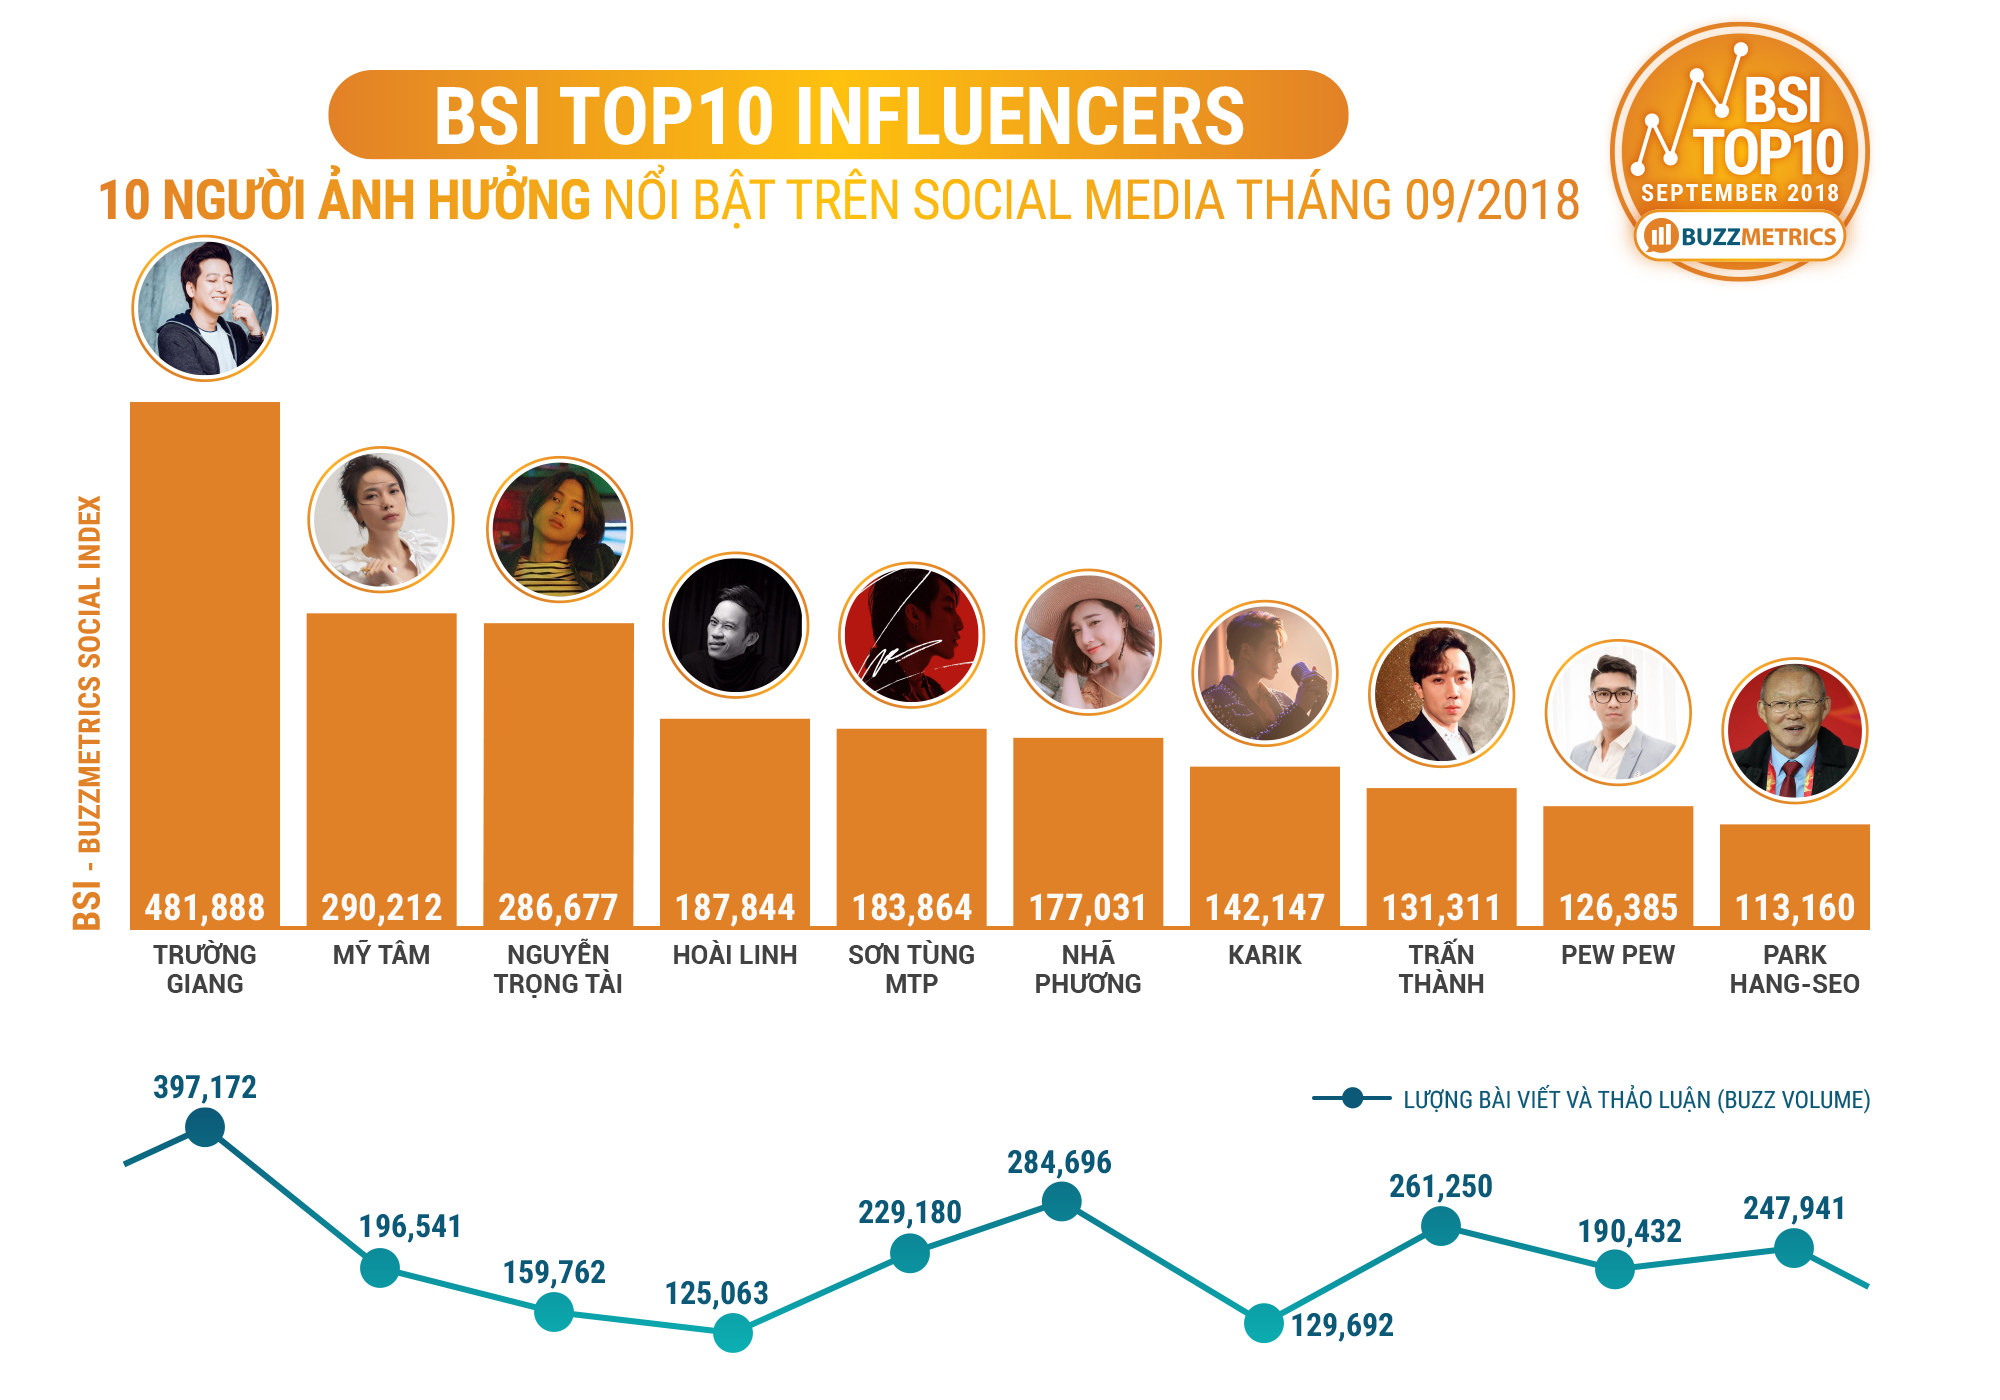 BSI Top10 Influencers 09/2018